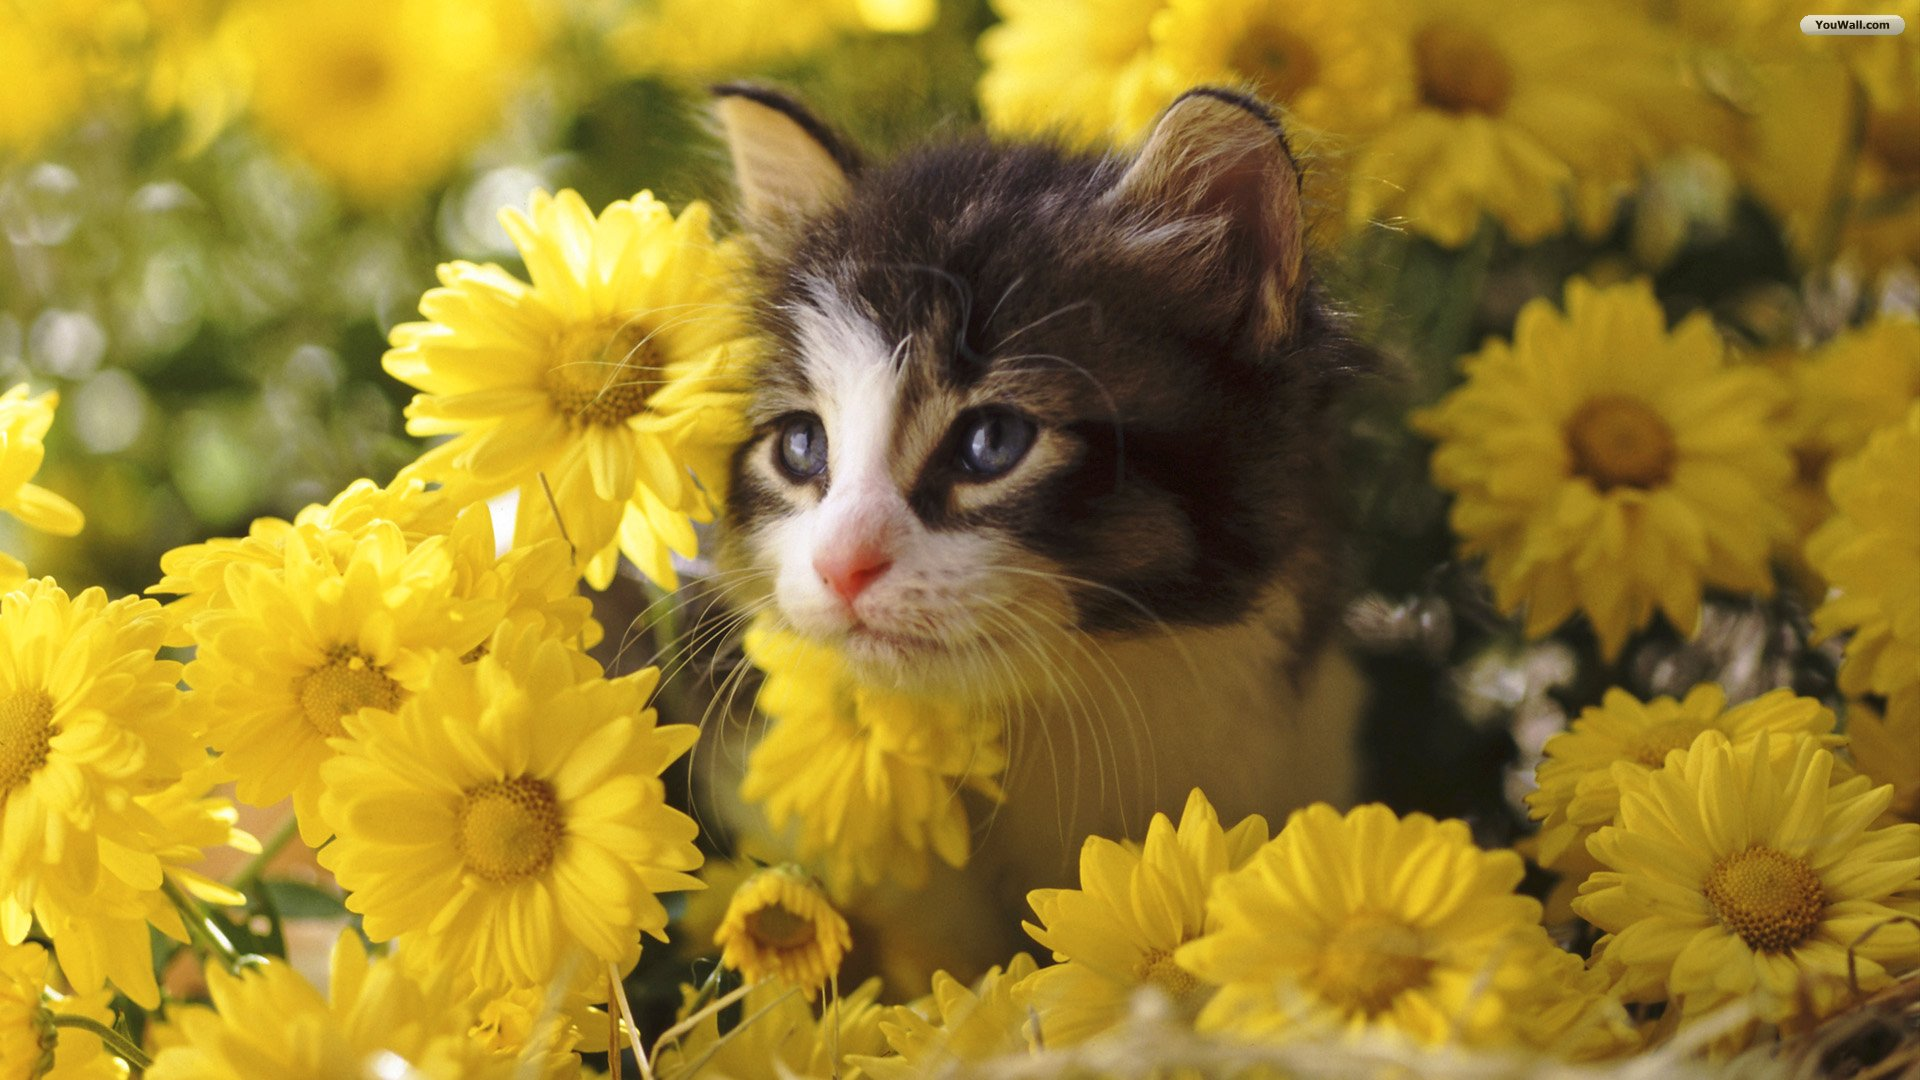 Cat and Flowers Wallpaper